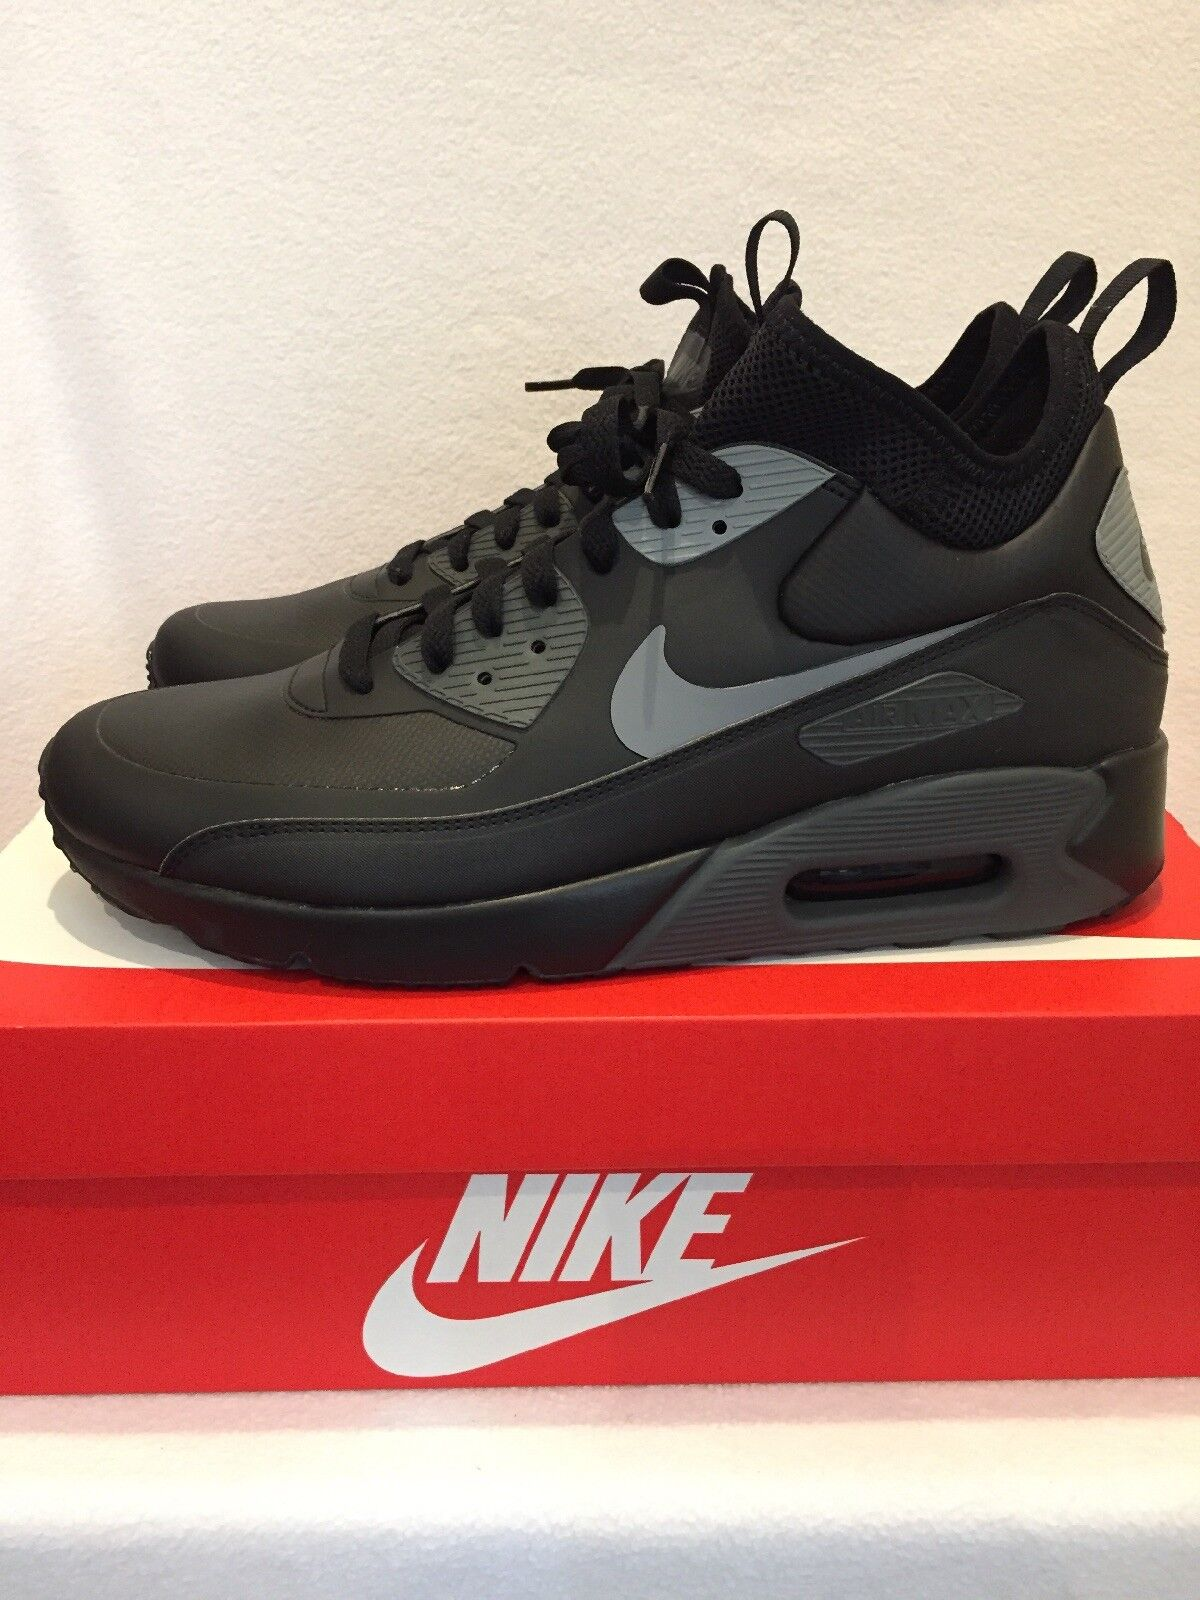 Nike Air Max 90 Ultra Mid Winter Black Grey UK Size 7 Brand New In Box